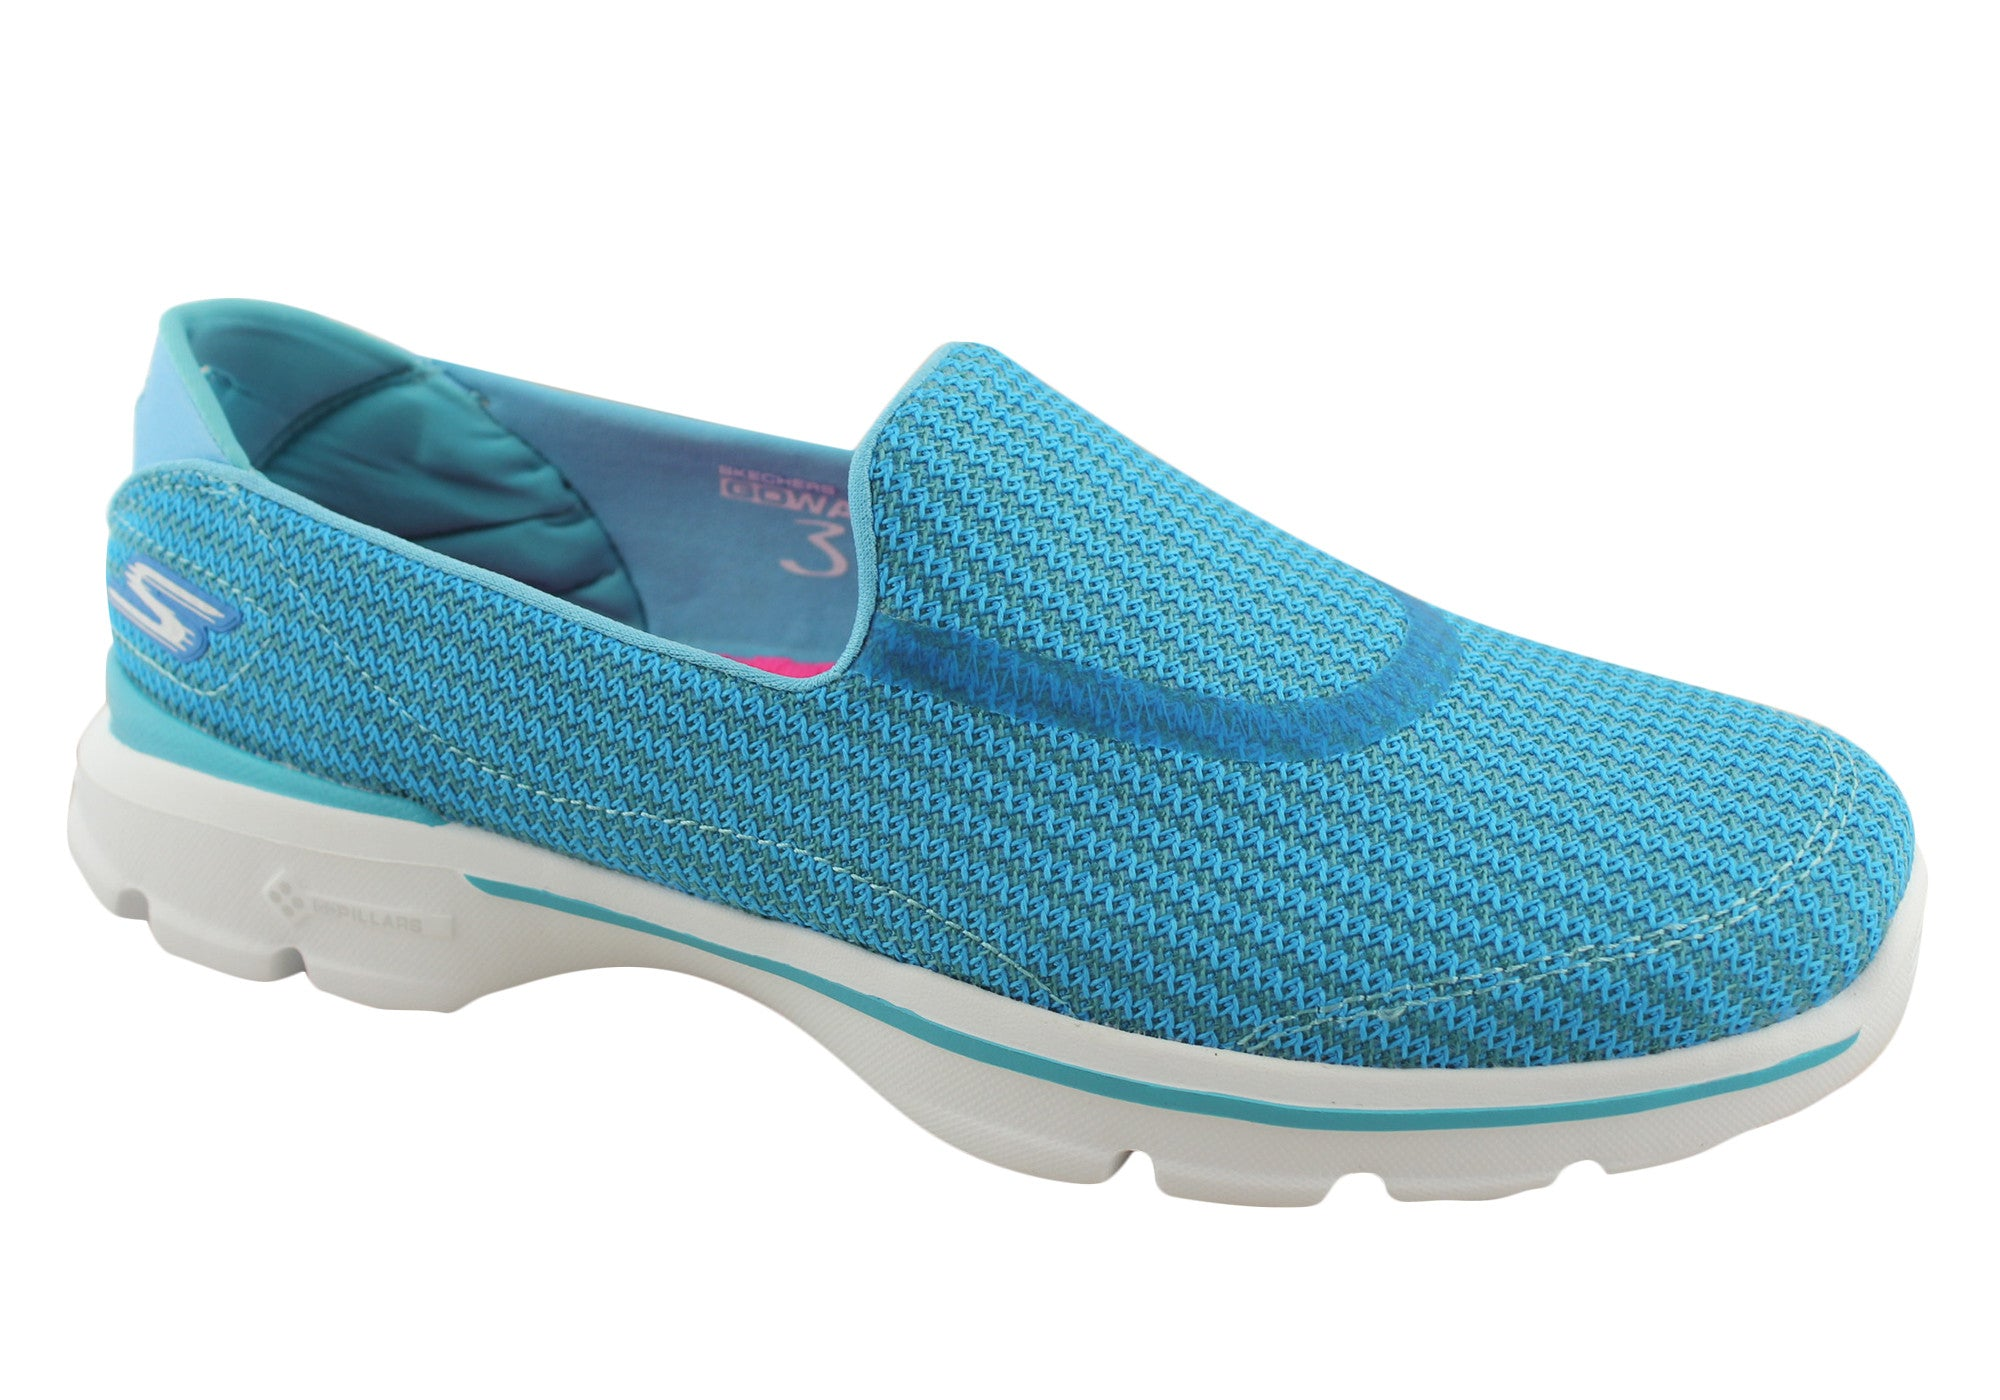 Skechers Go Walk 3 Womens Comfortable Shoes